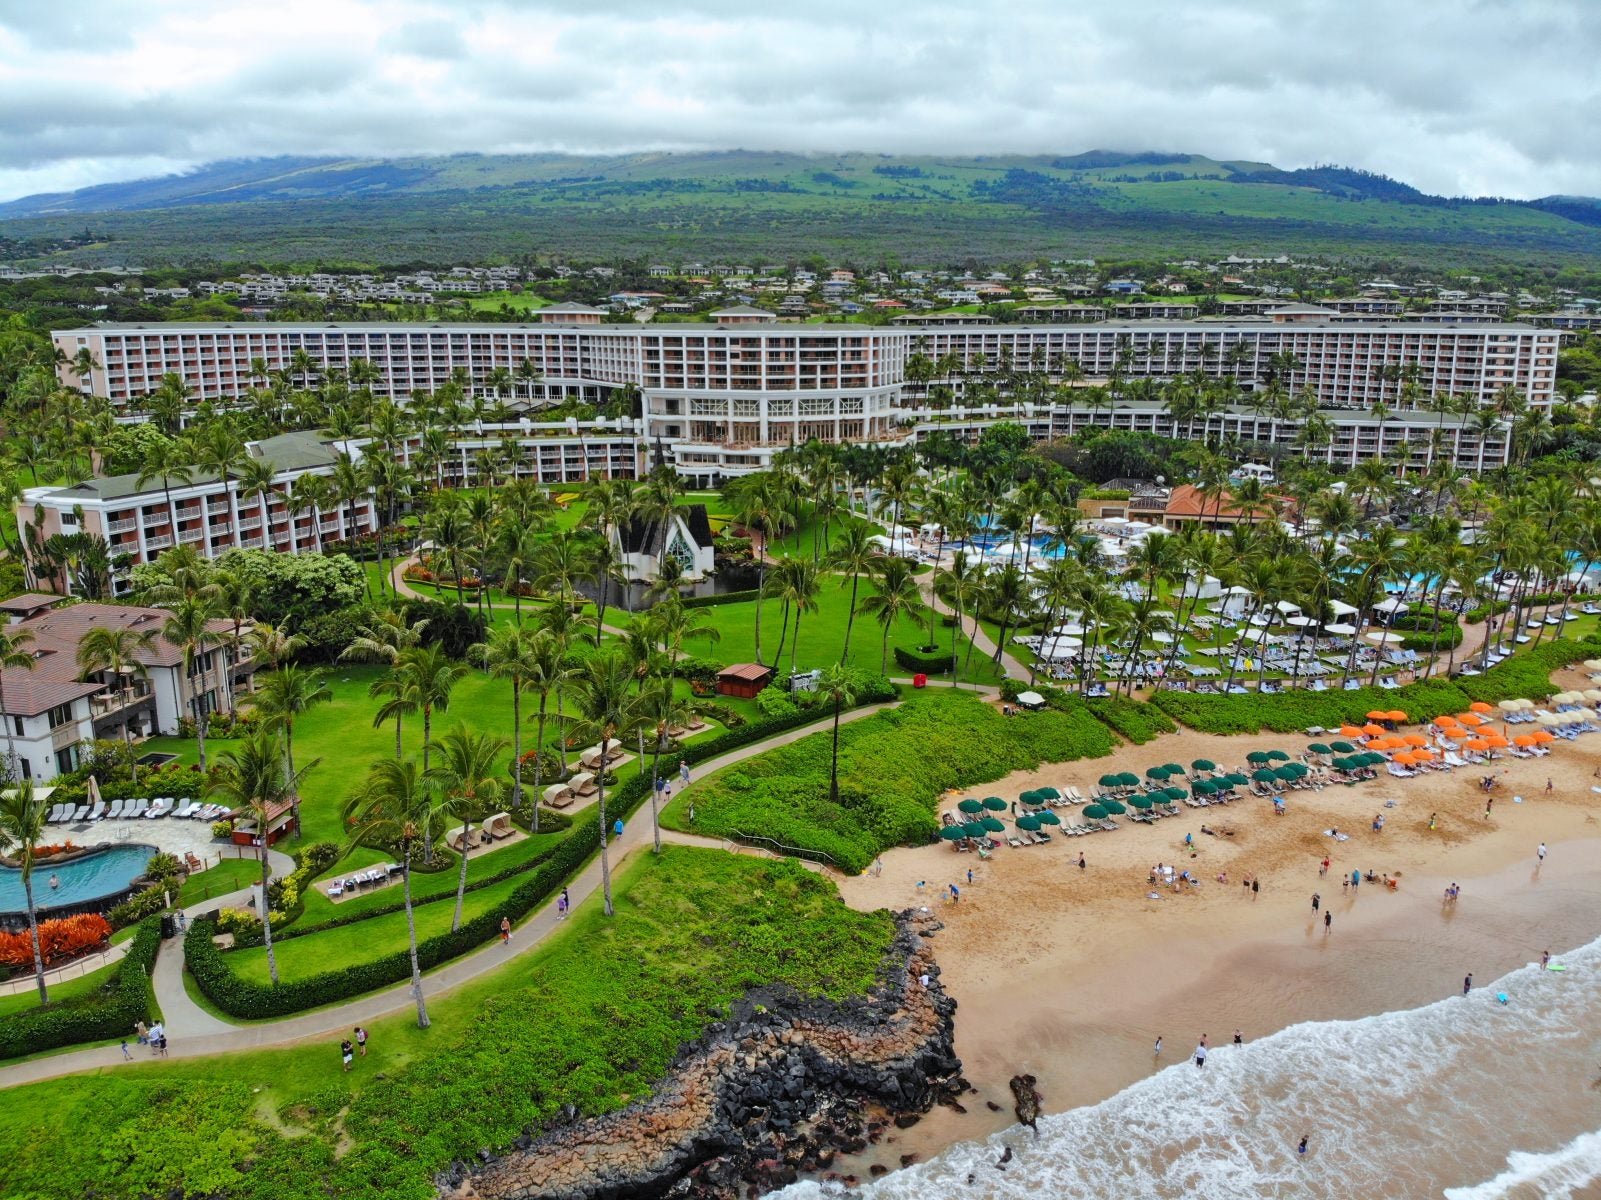 I Booked a $4,200 Luxury Vacation at Hawaii's Grand Wailea Resort for FREE Using Hilton Honors Points (So Can You!)